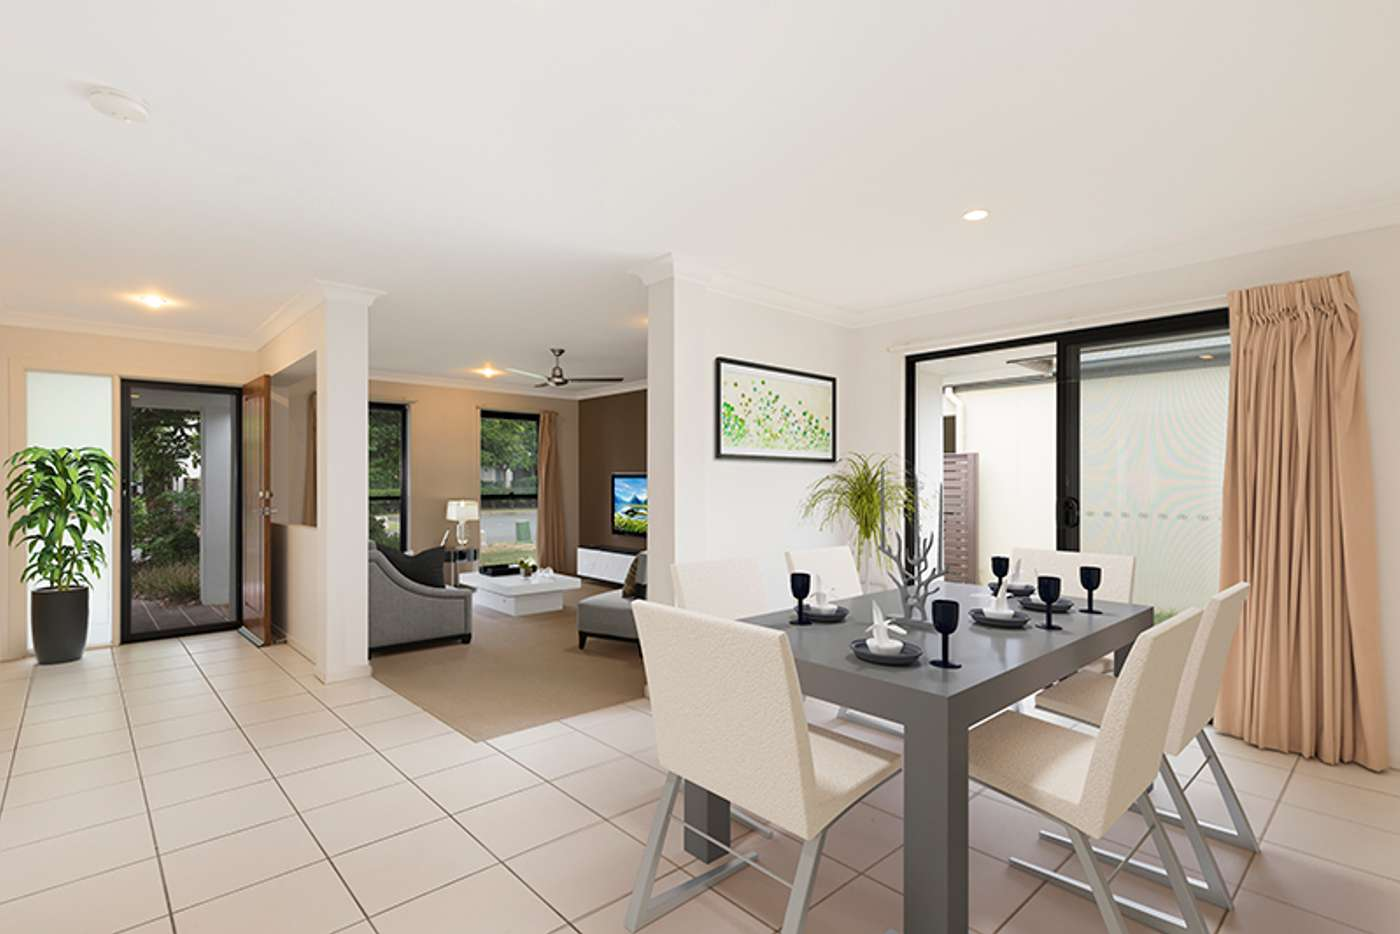 Main view of Homely house listing, 5/80 McIntyre Street, Hendra QLD 4011